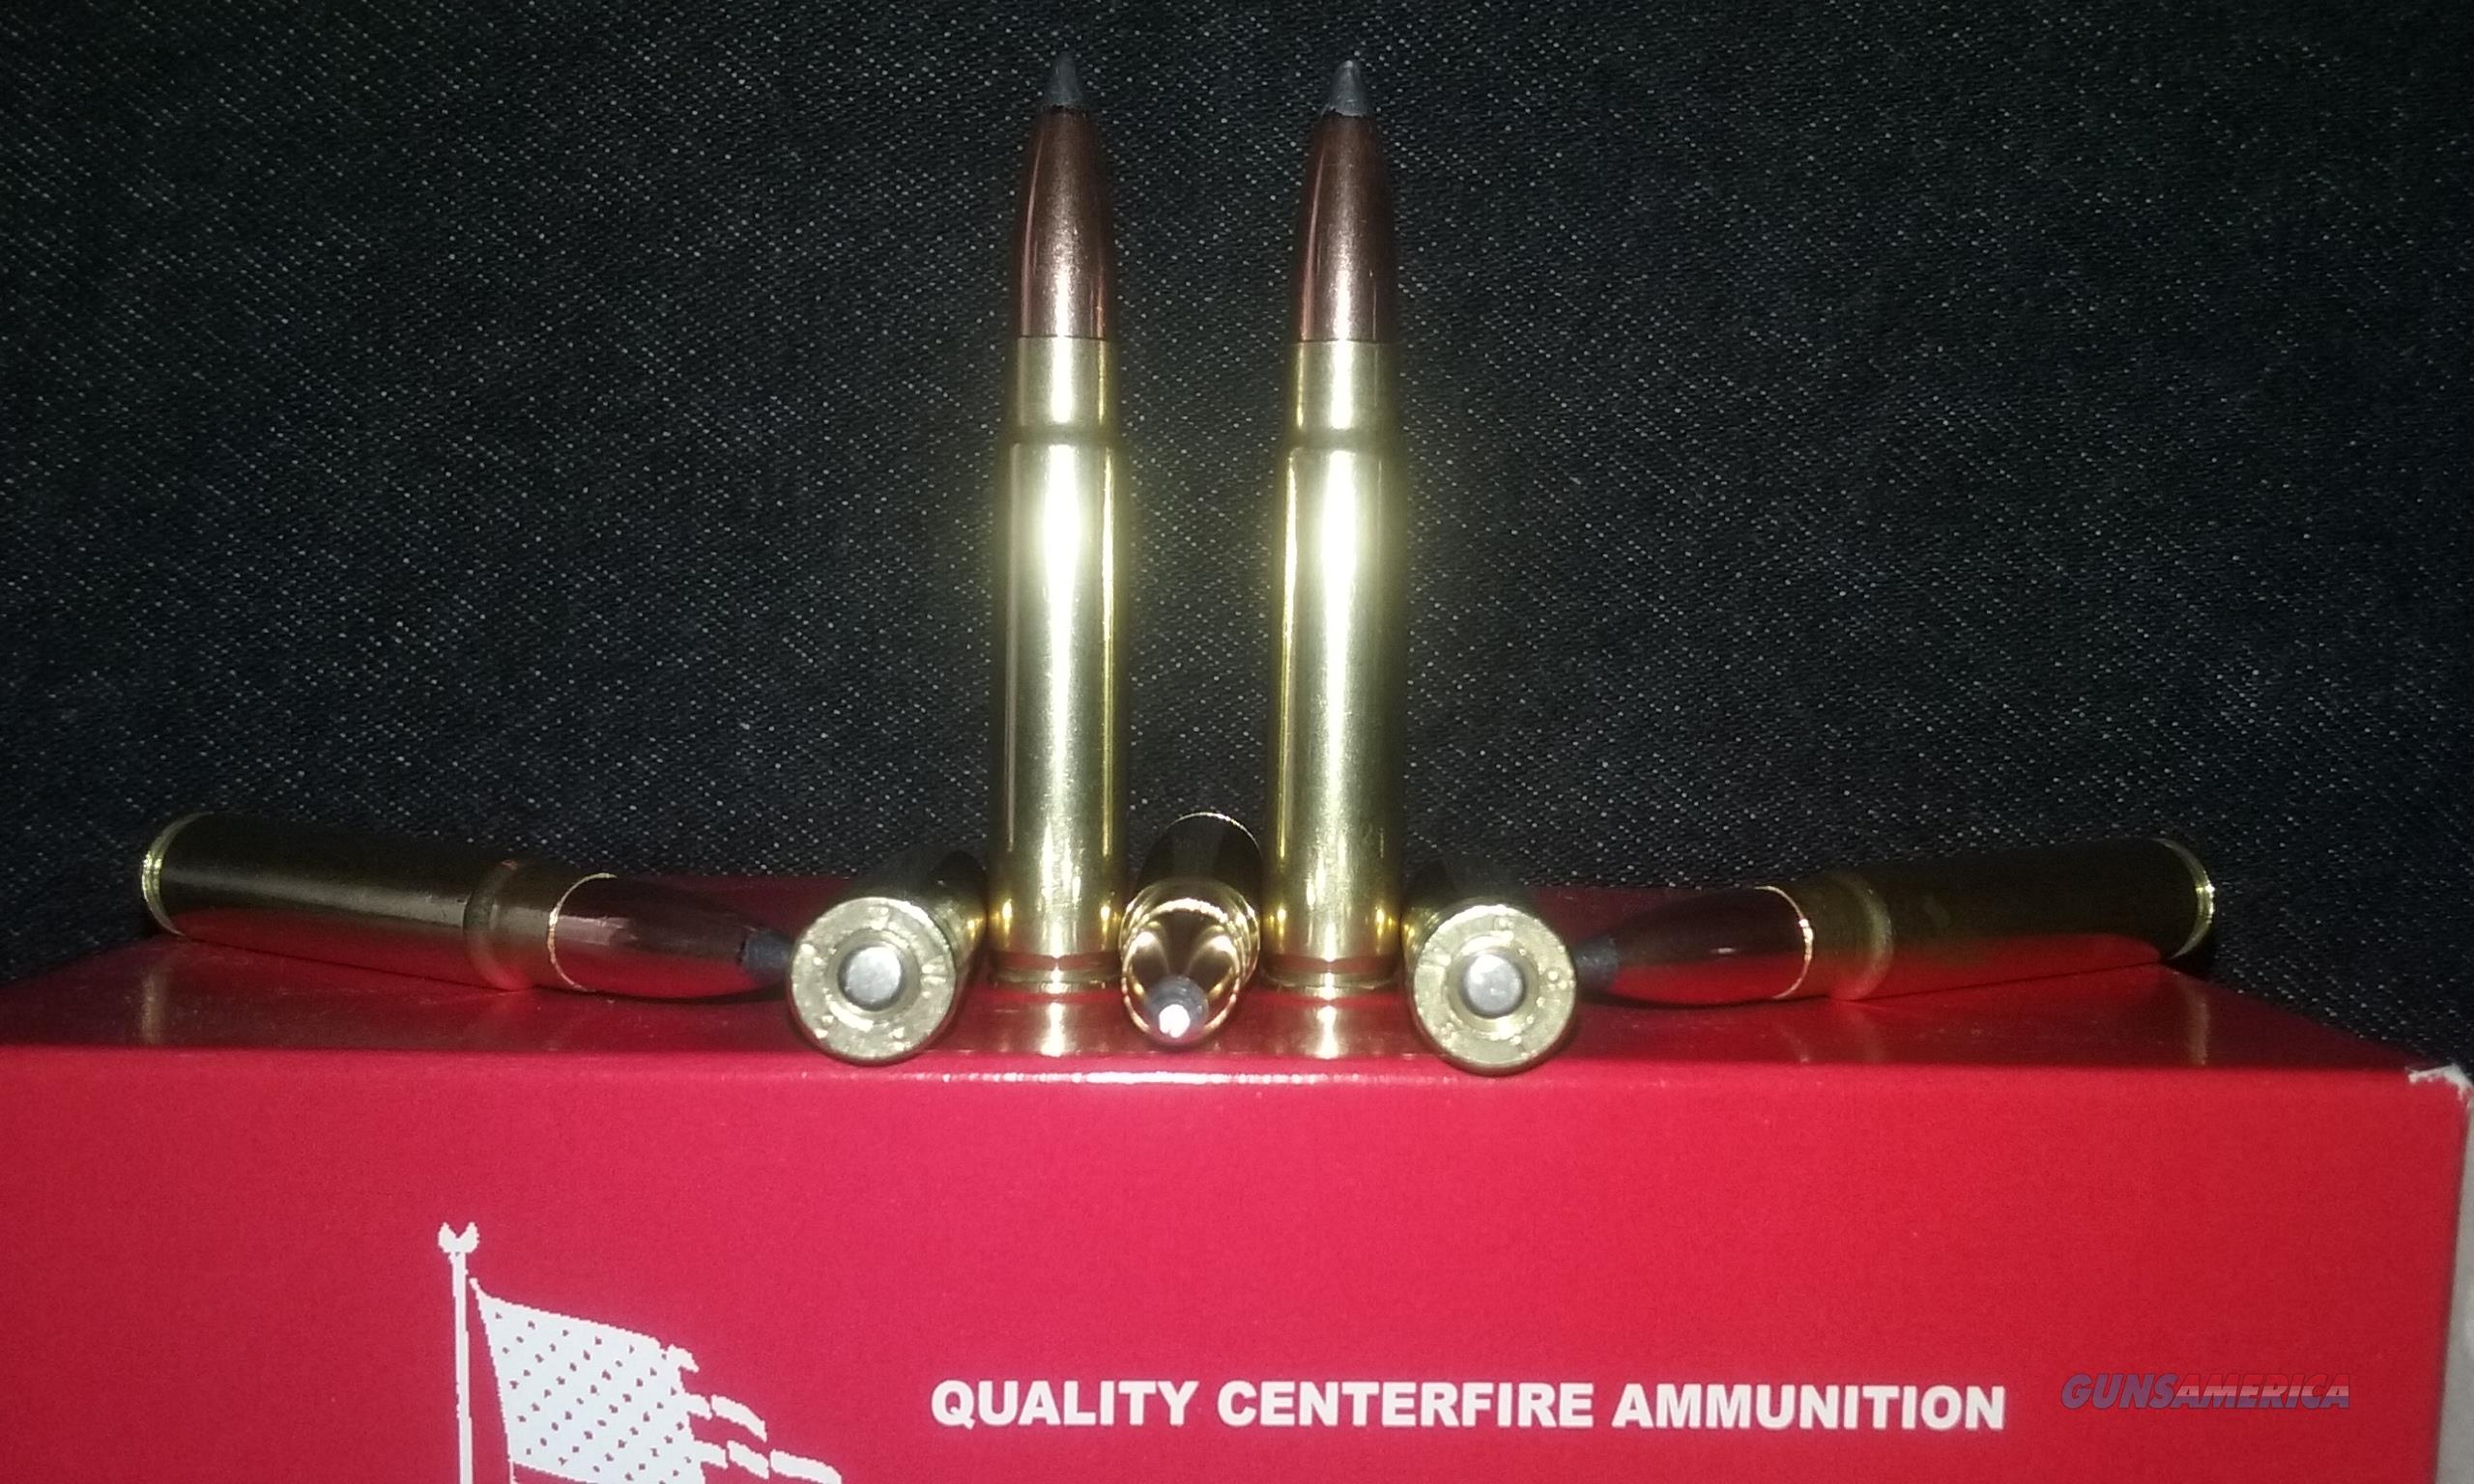 7mm TC/U Ammo. (7mm Thompson Center / Ugalde)  Non-Guns > Ammunition